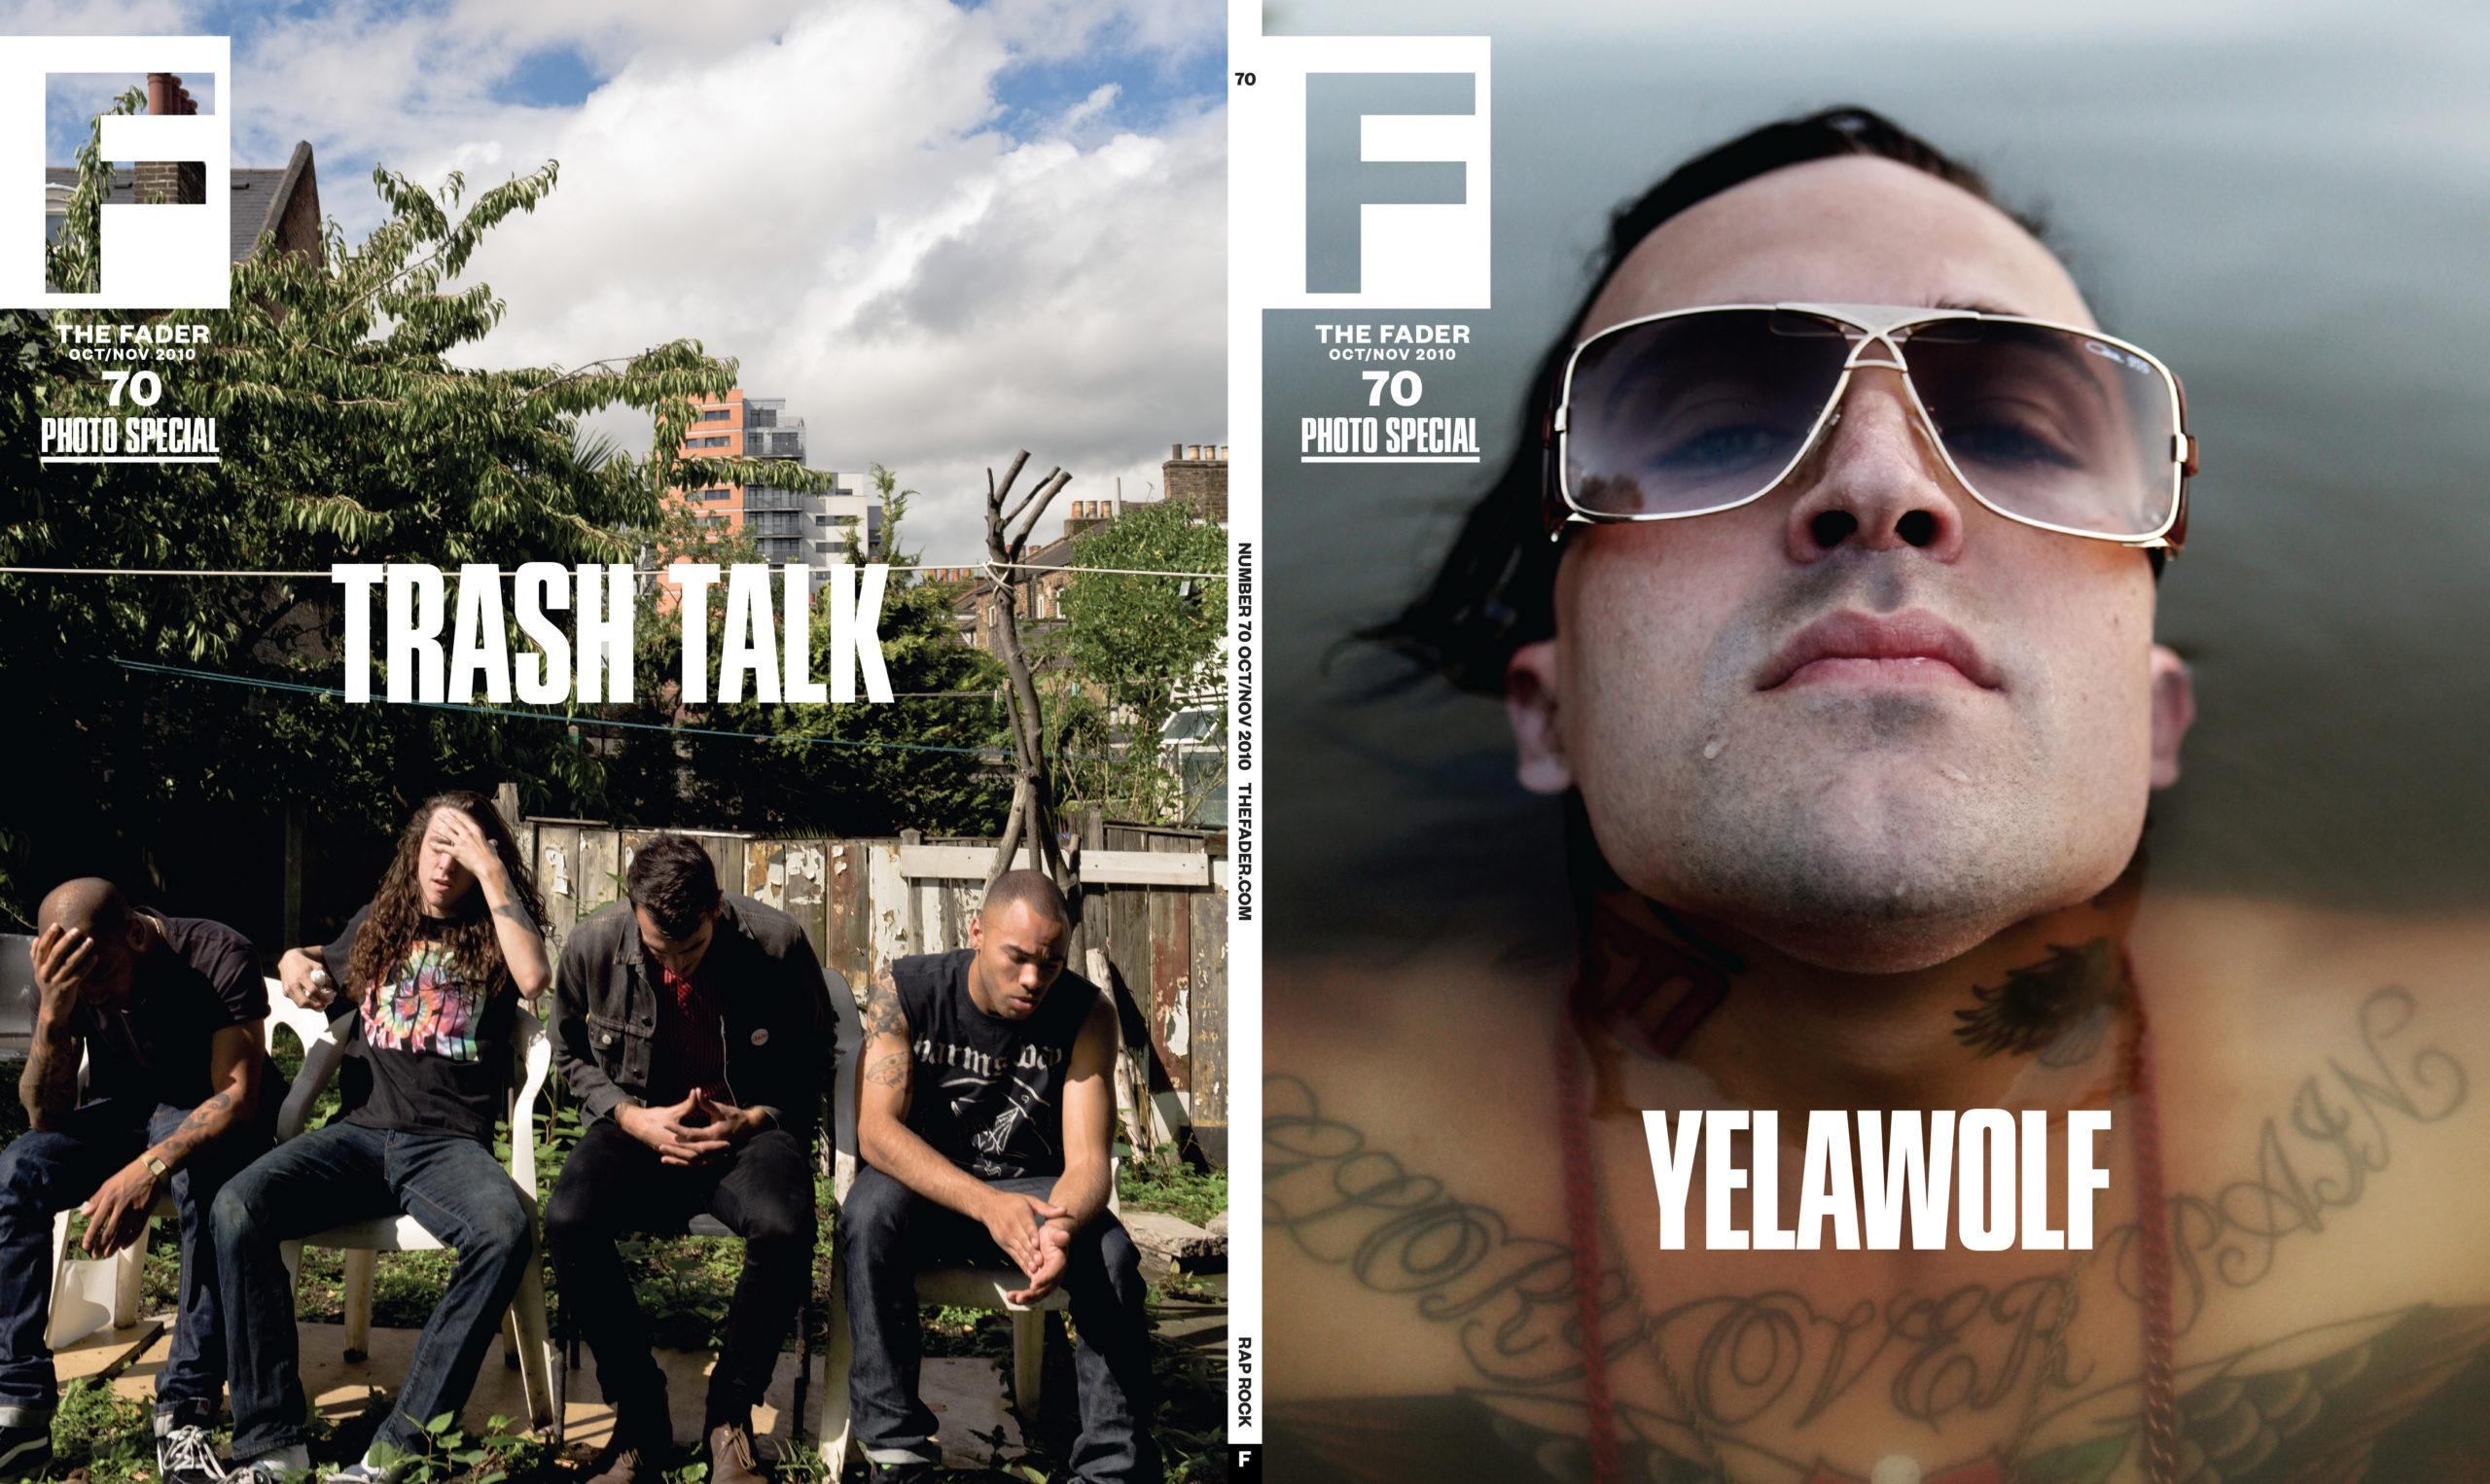 01_Cover41_Fader70